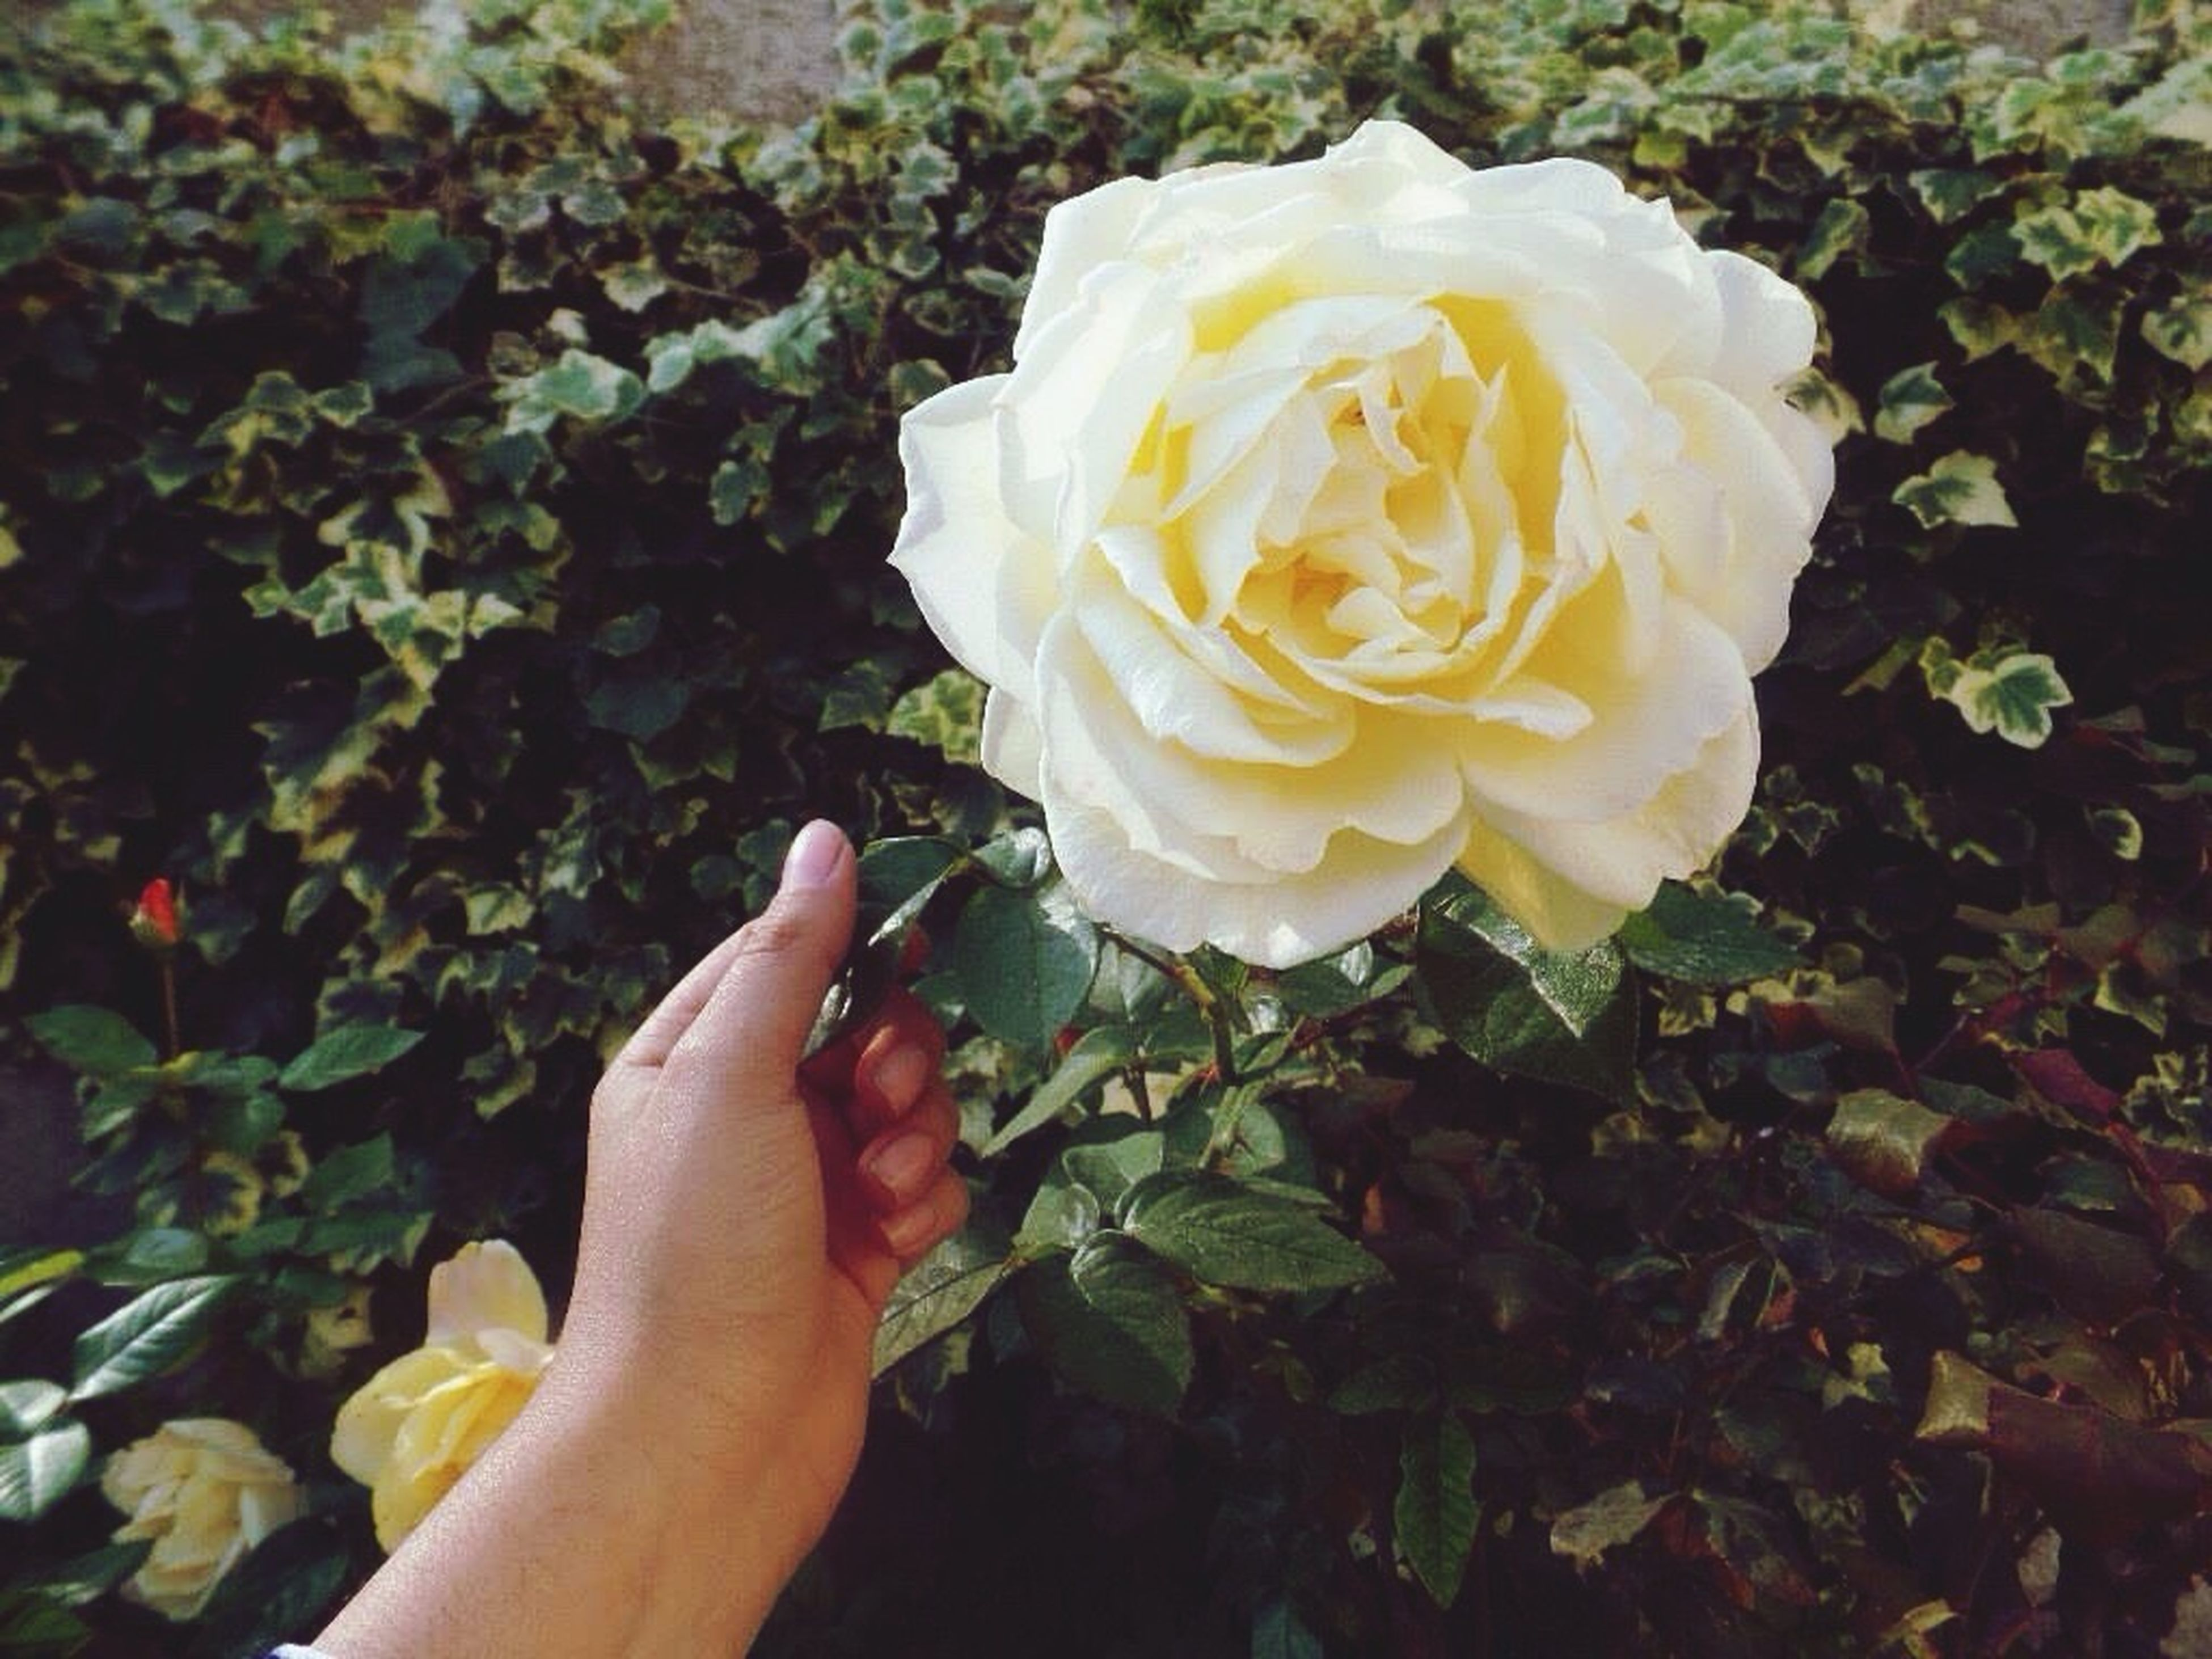 flower, person, rose - flower, petal, holding, fragility, flower head, freshness, lifestyles, personal perspective, rose, single flower, leisure activity, part of, beauty in nature, unrecognizable person